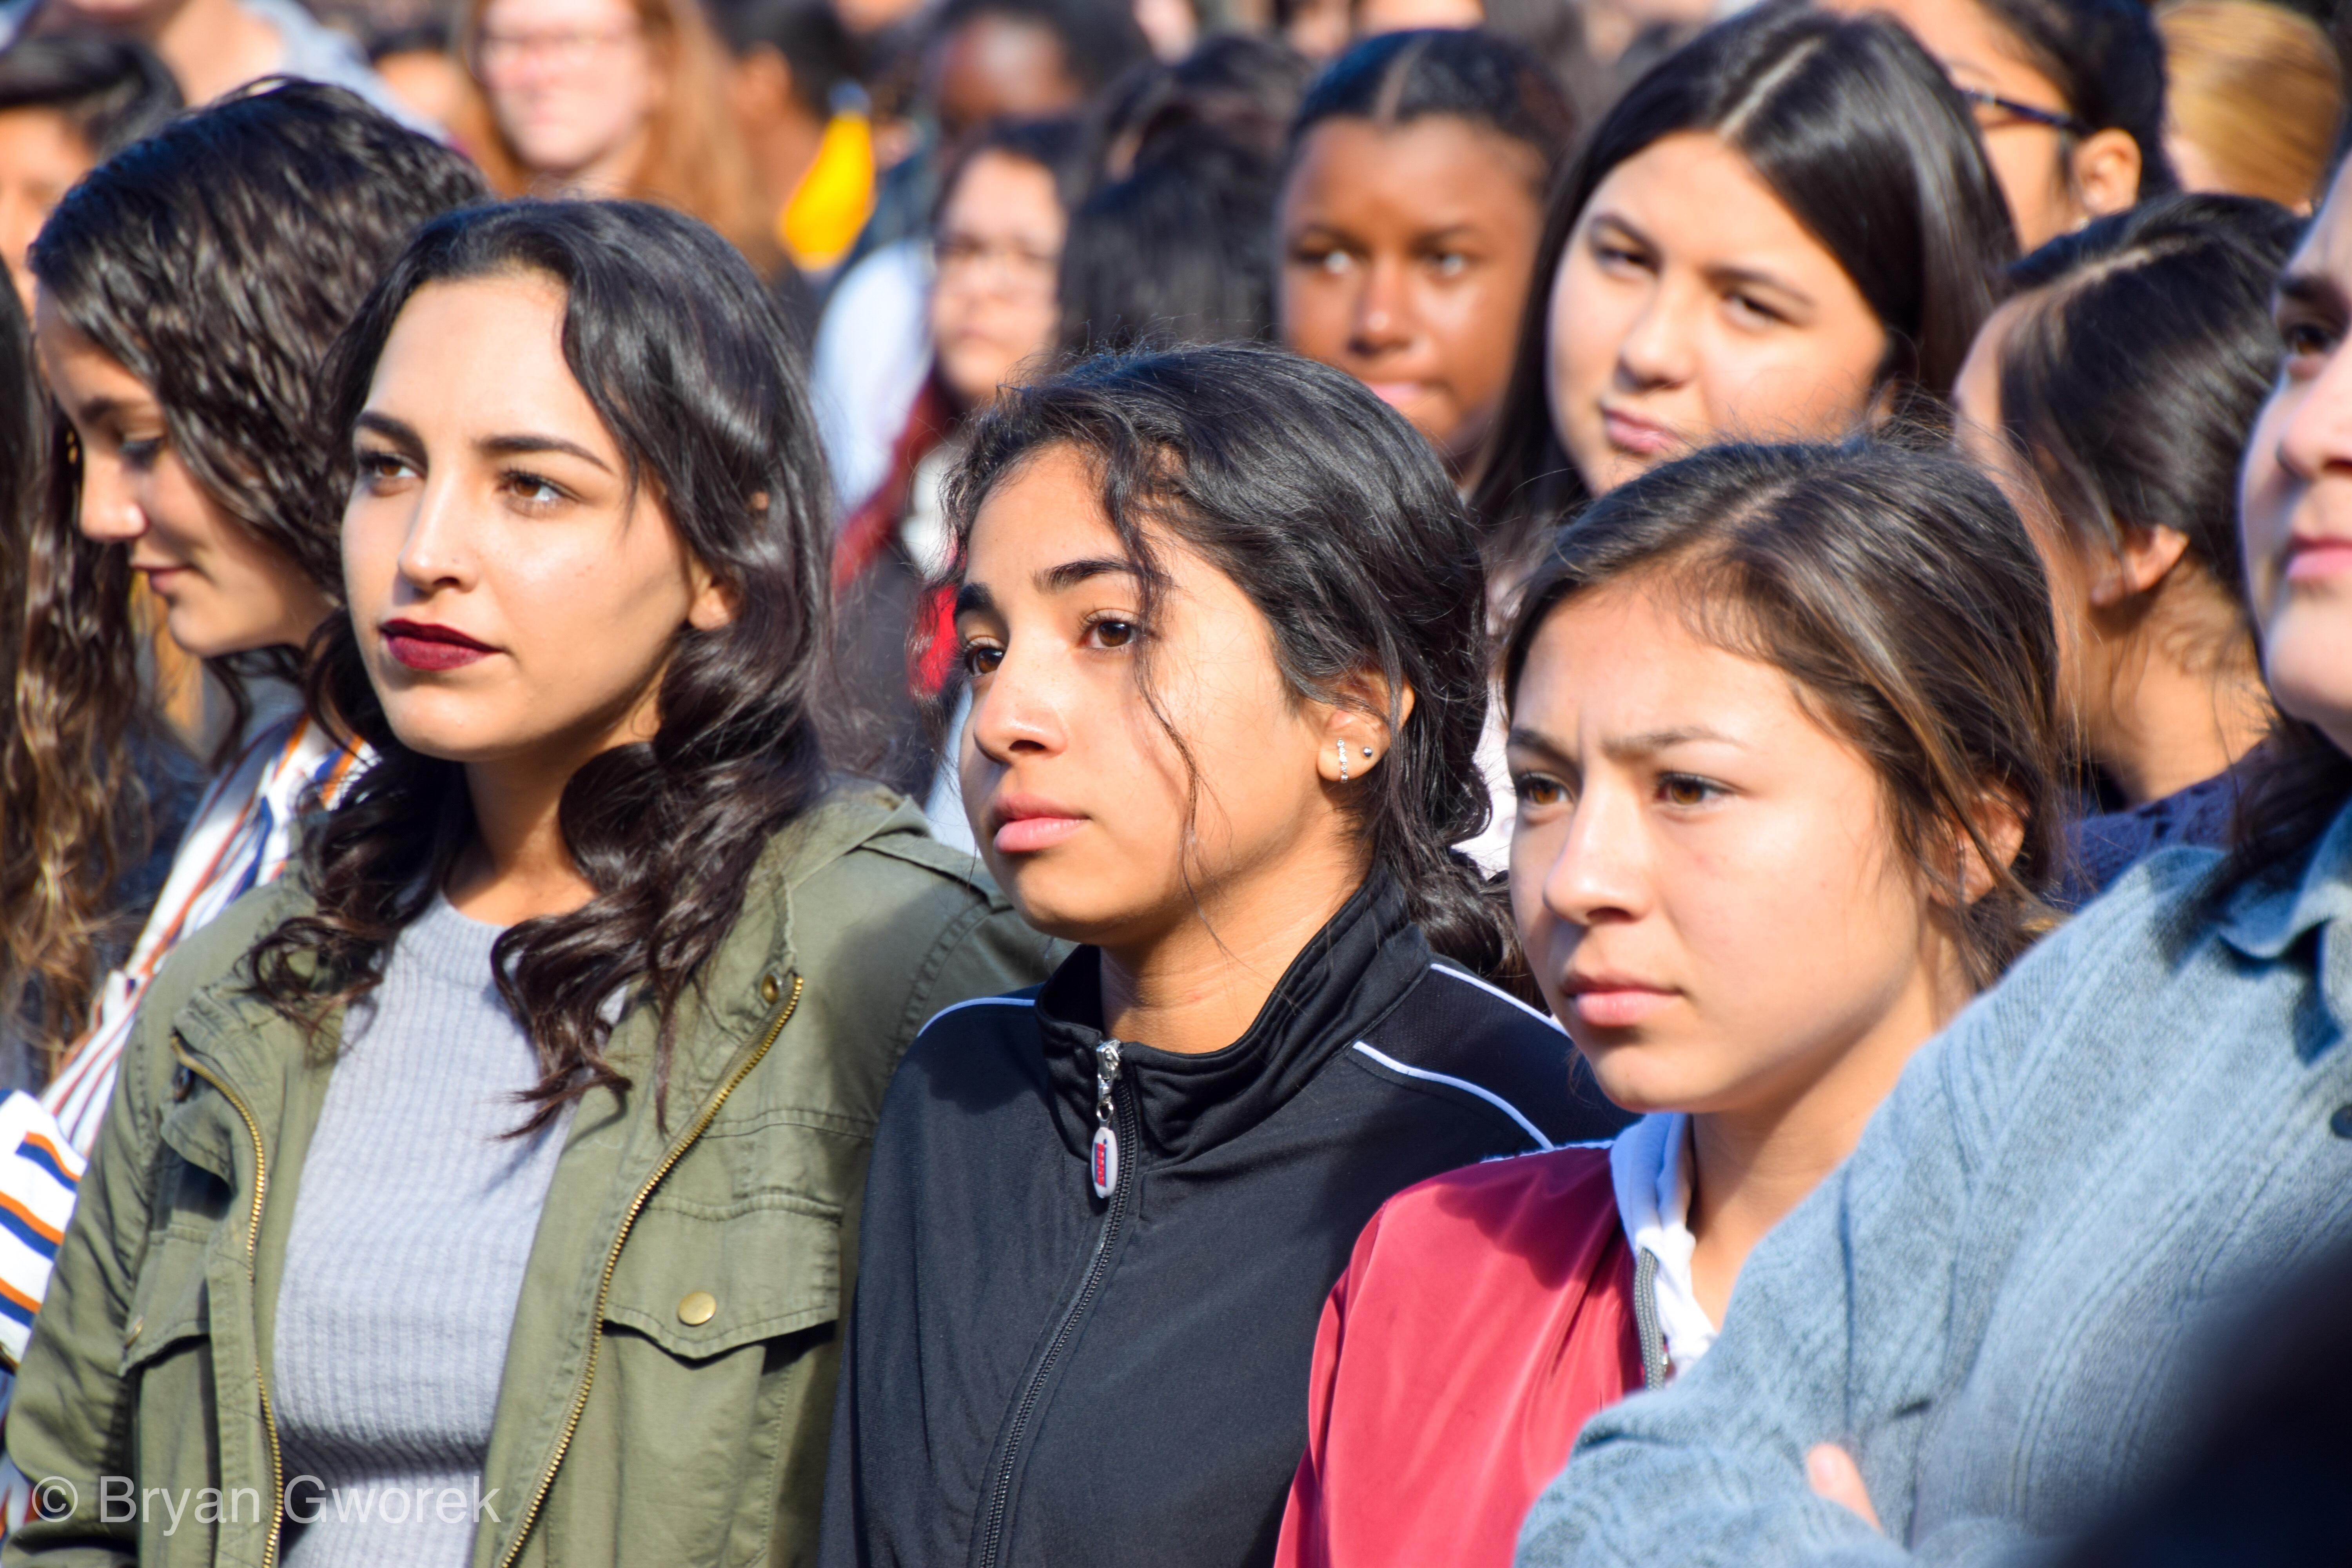 img 9182 Students of John W. North High School join together for #NationalWalkoutDay in support of Parkland shooting and gun violence